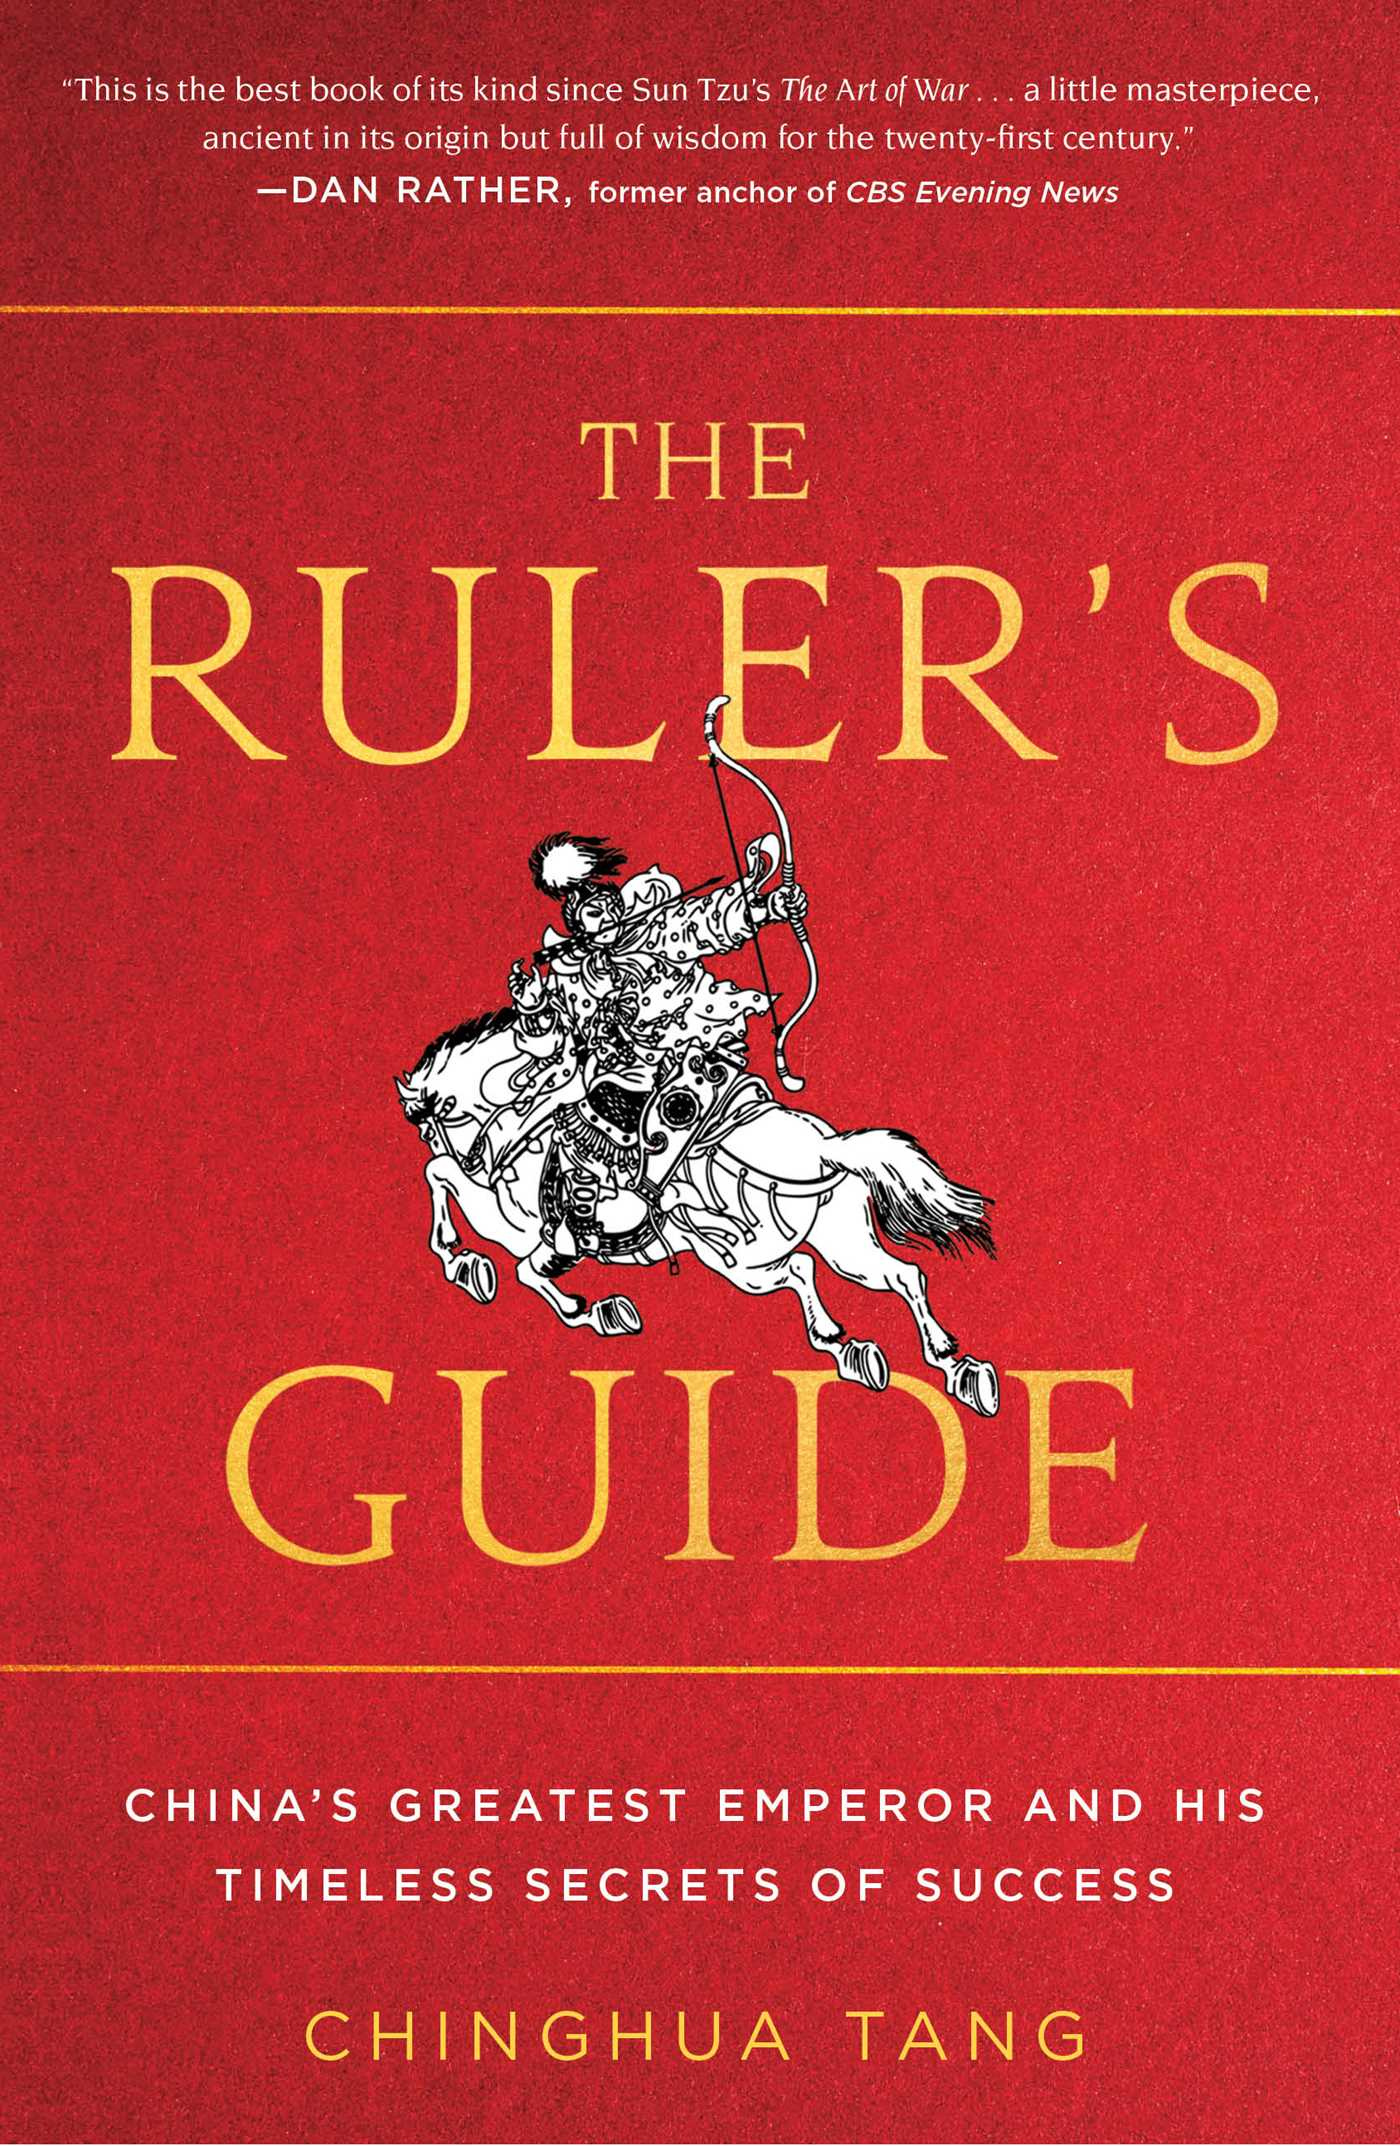 The rulers guide 9781501138775 hr